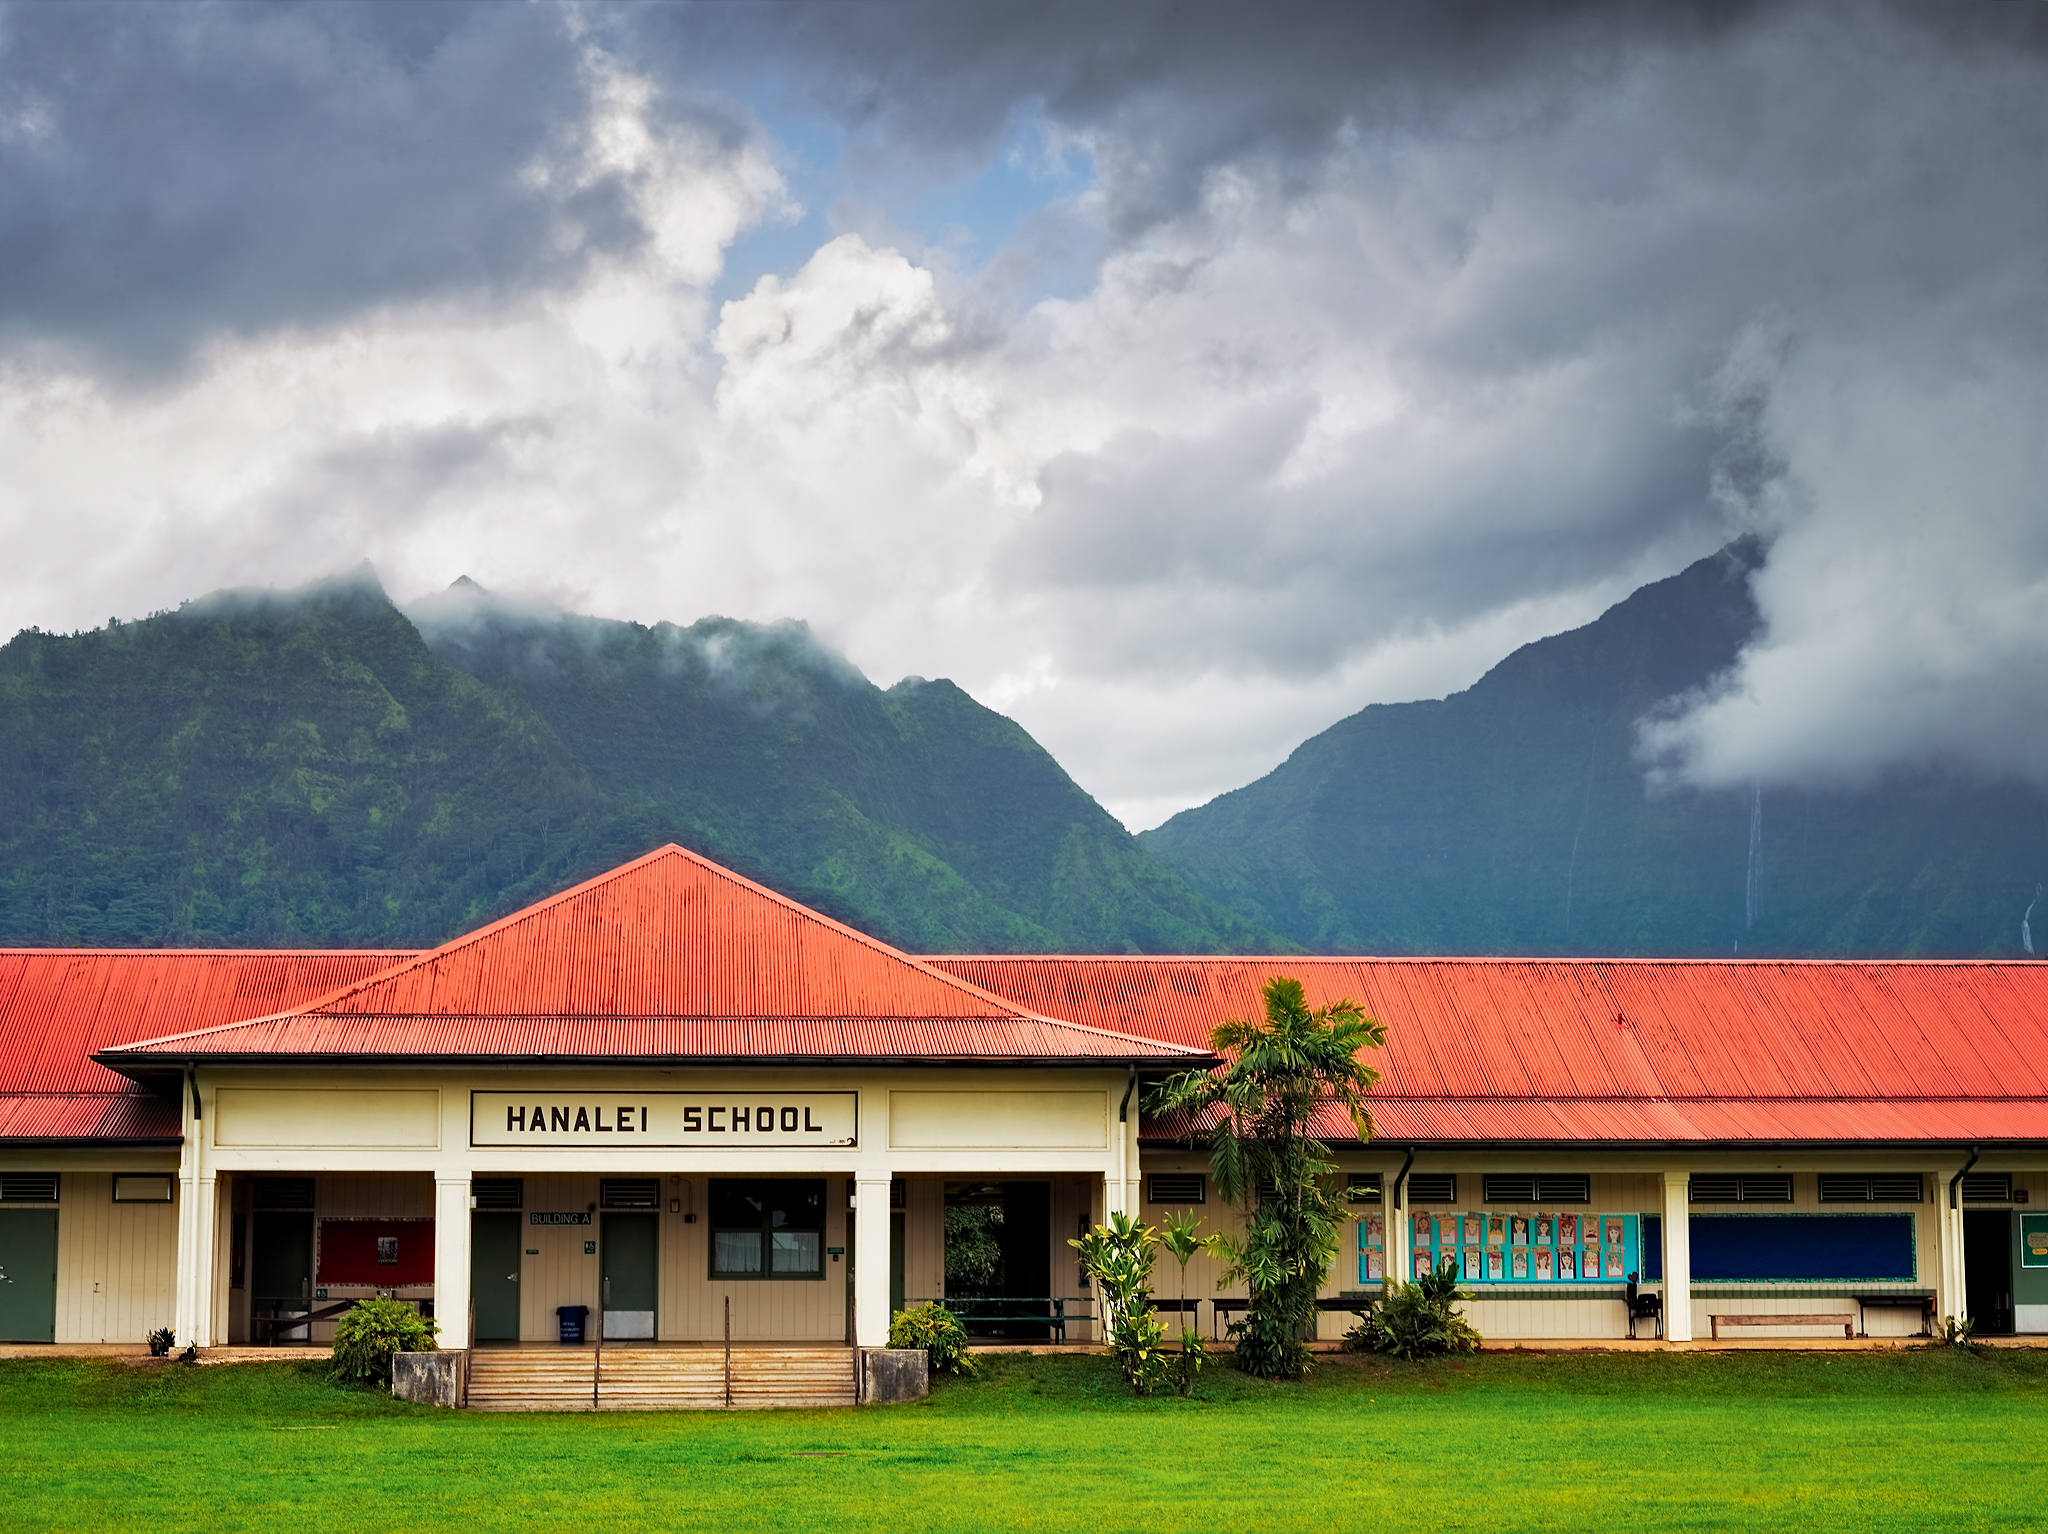 Hanalei School by Peter Adams.